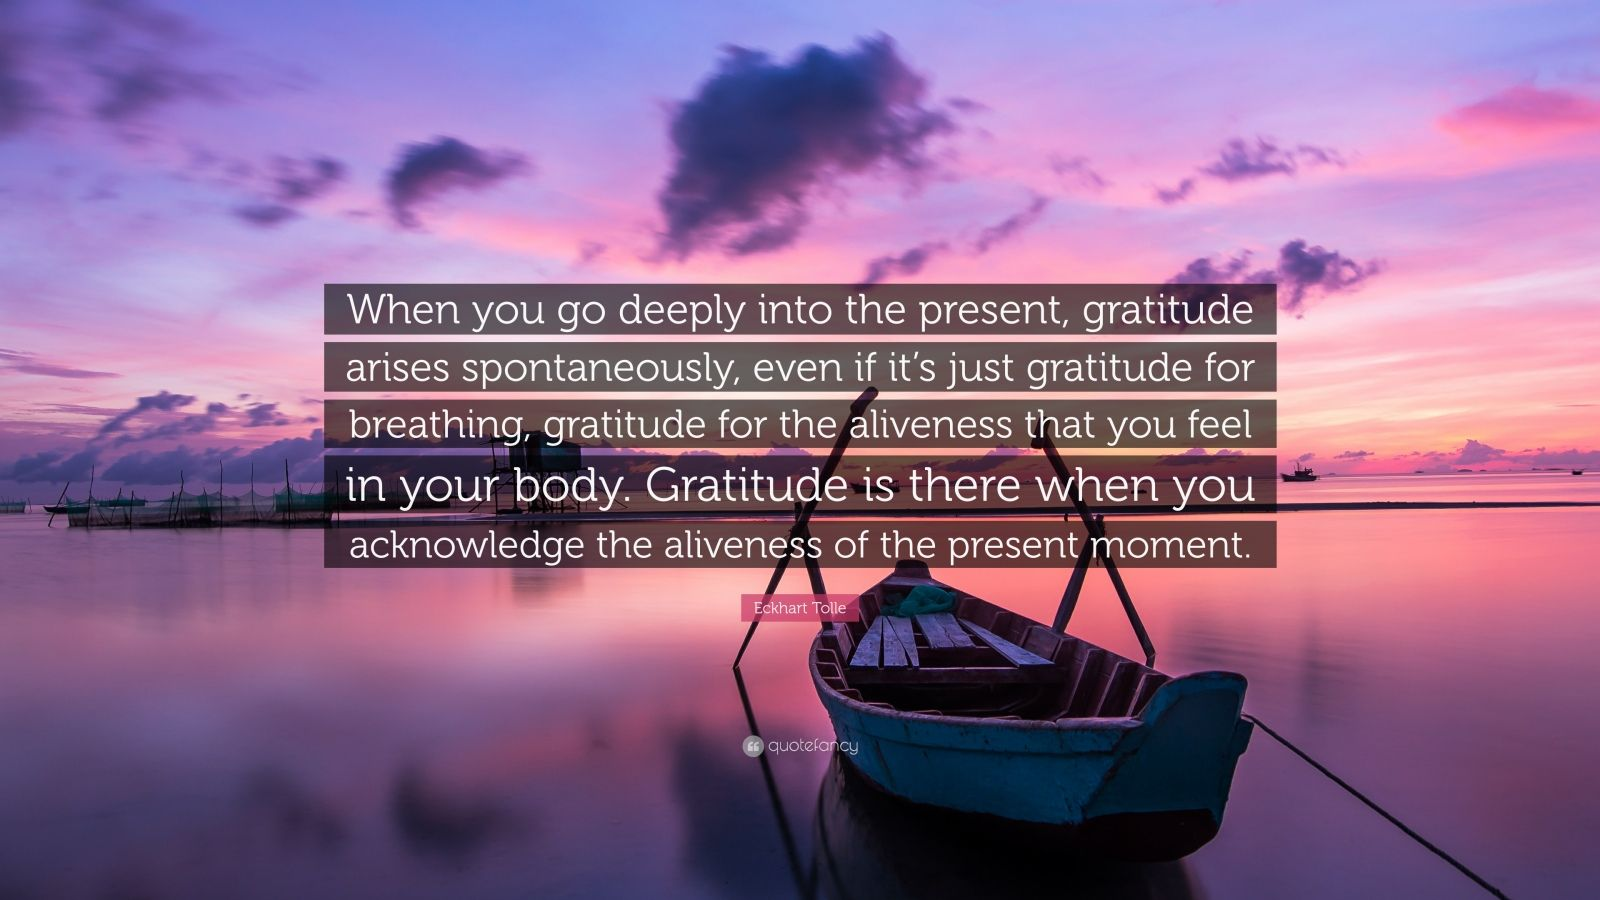 "Eckhart Tolle Quote: ""When you go deeply into the present, gratitude arises spontaneously, even if it's just gratitude for breathing, gratitude for the aliveness that you feel in your body. Gratitude is there when you acknowledge the aliveness of the present moment."""